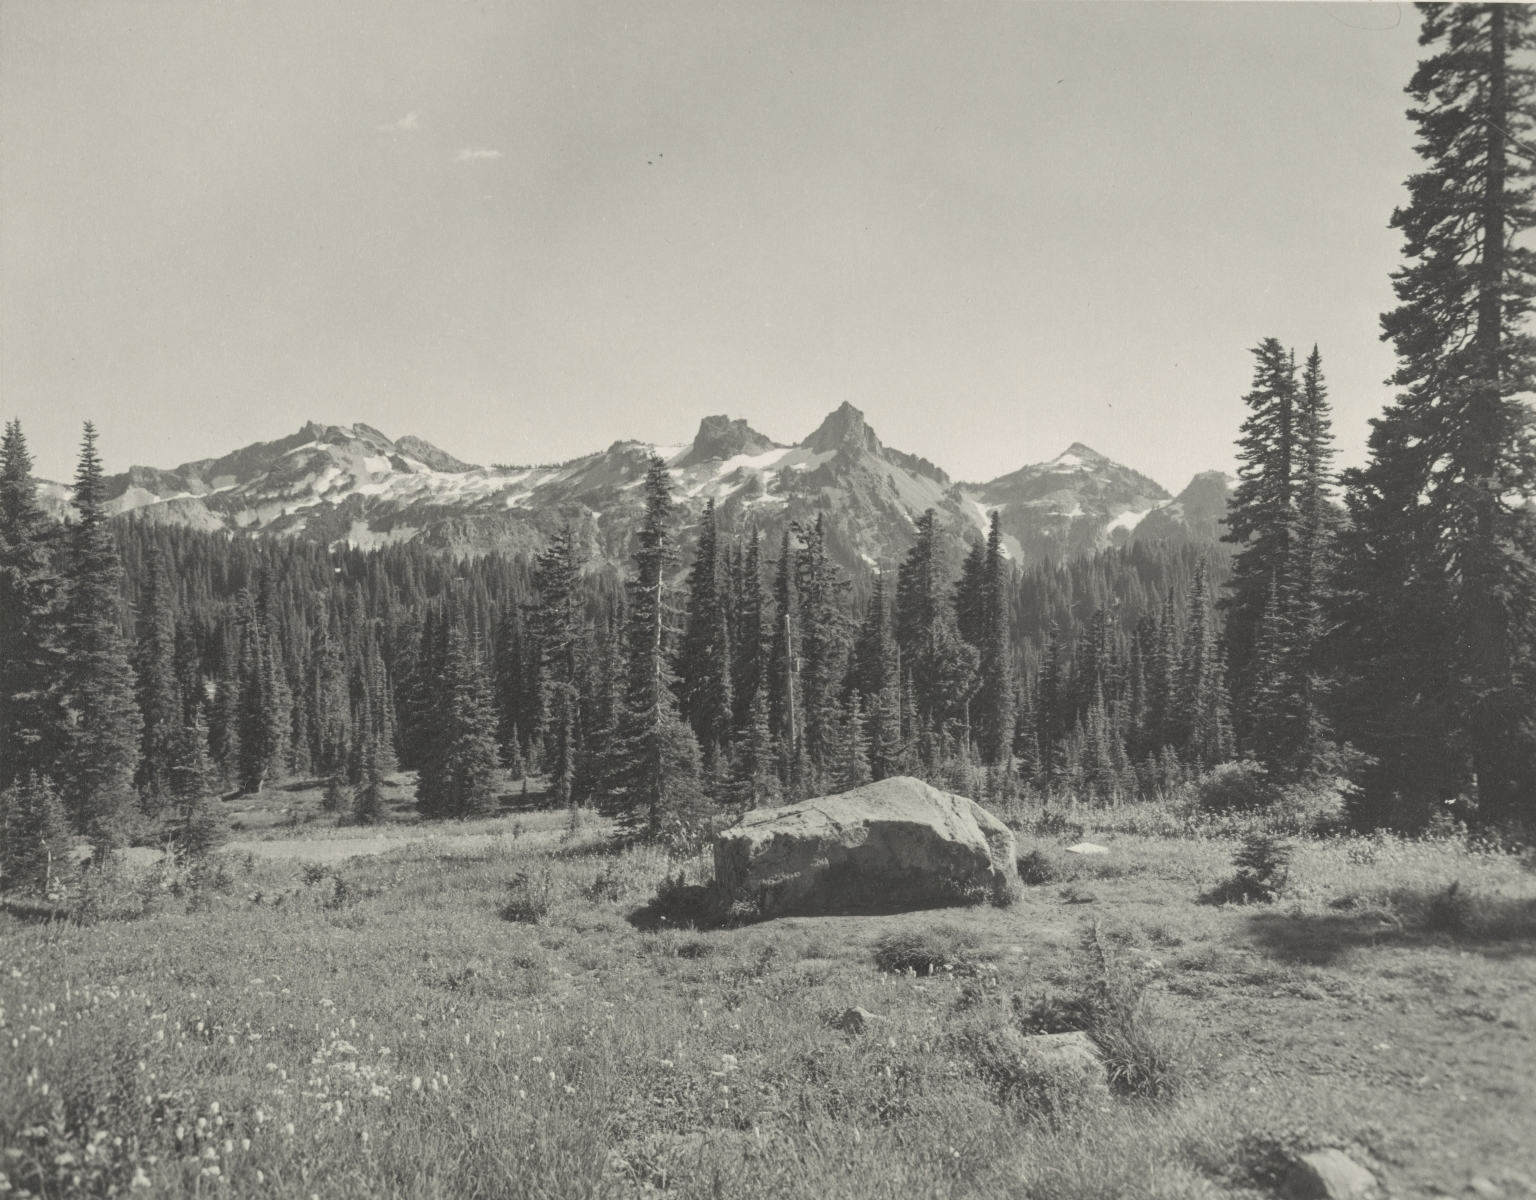 Tatoosh Range from Paradise Inn, Washington